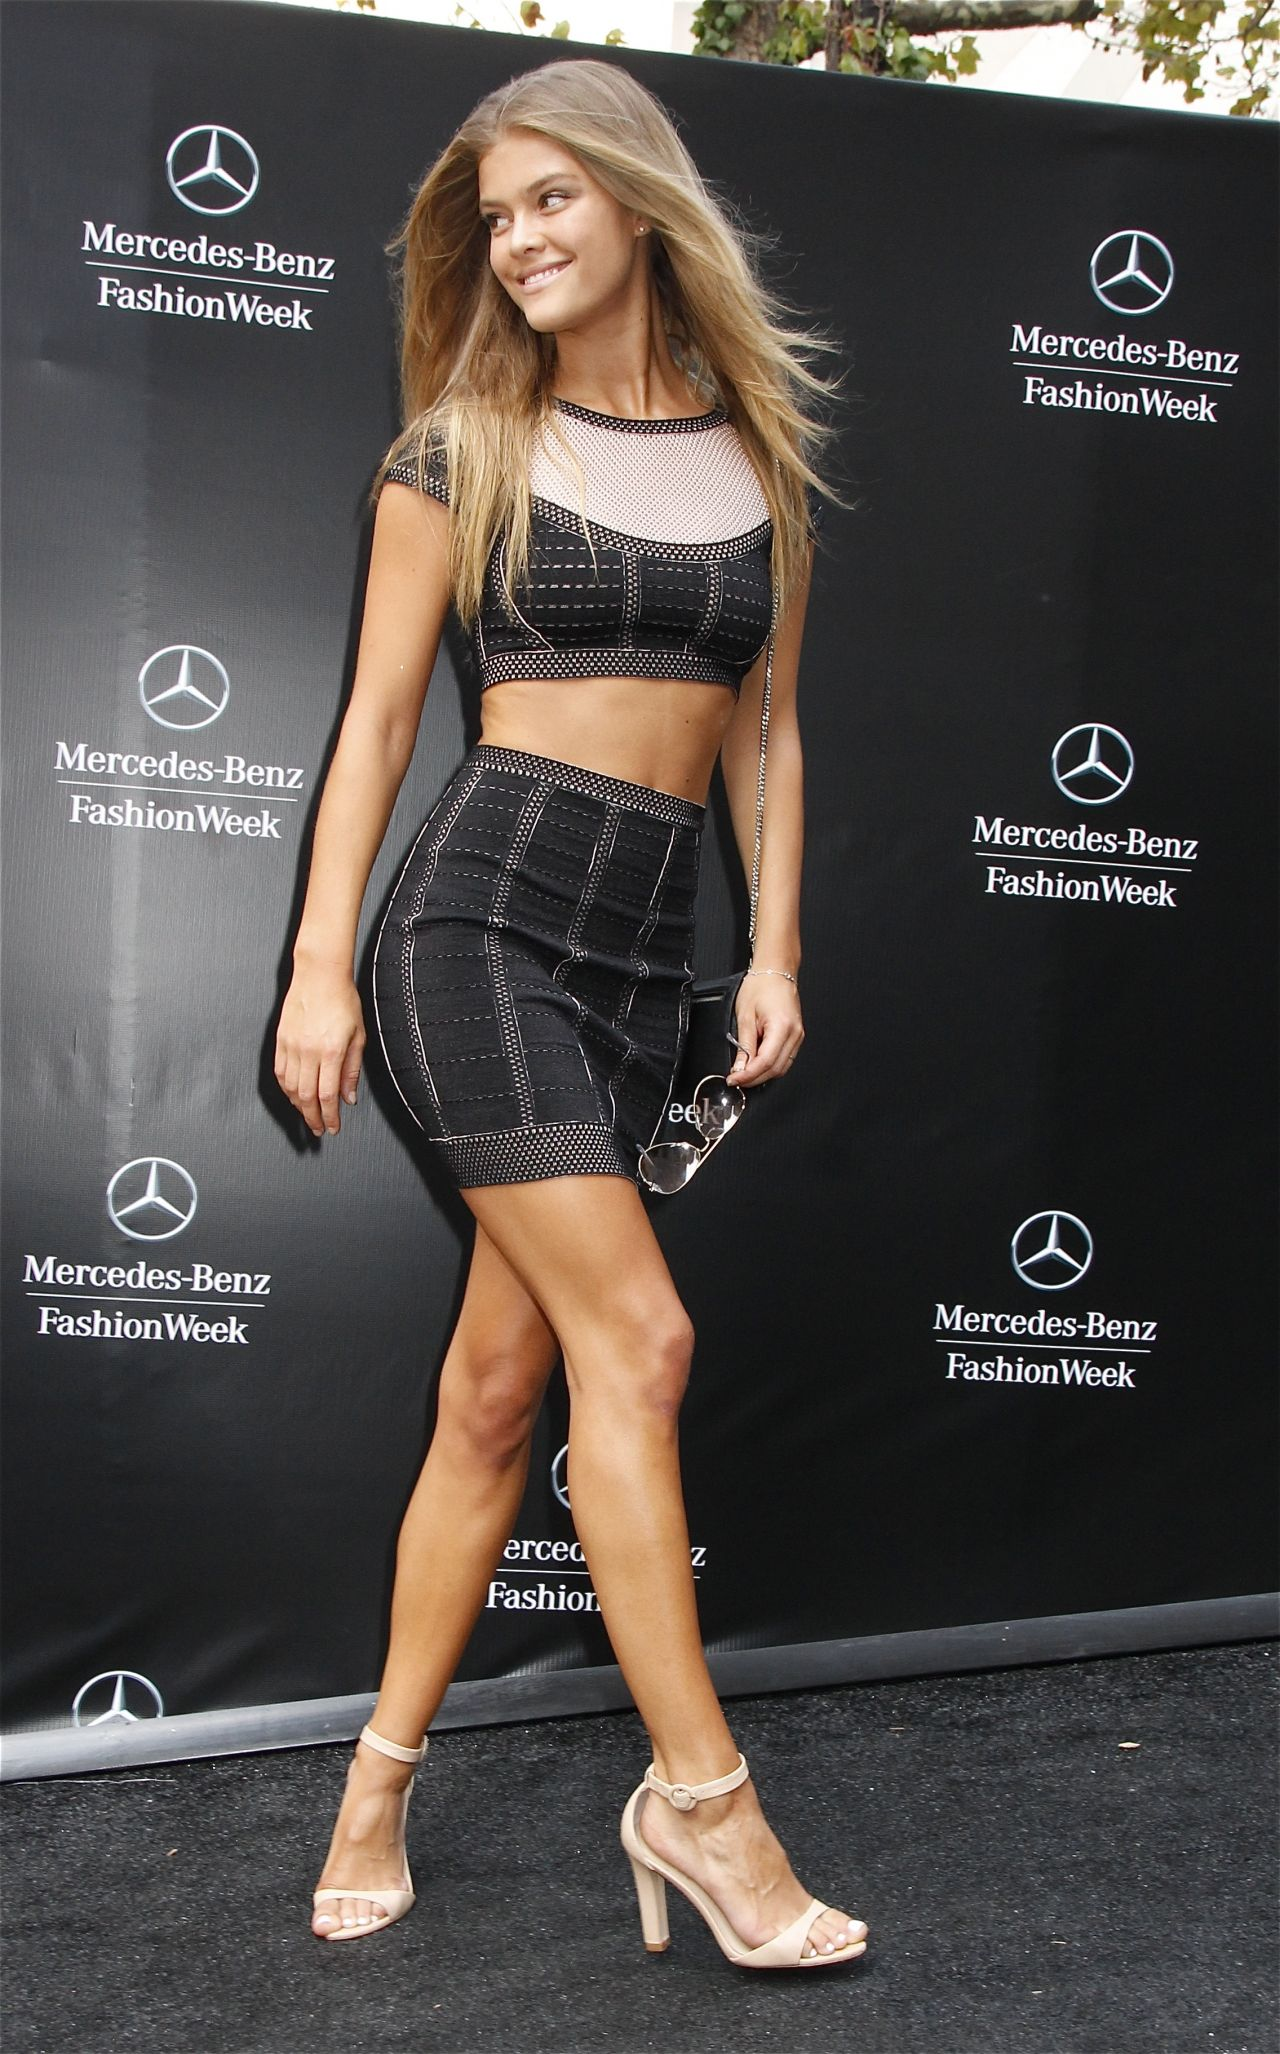 Mercedes-Benz Fashion Week 57